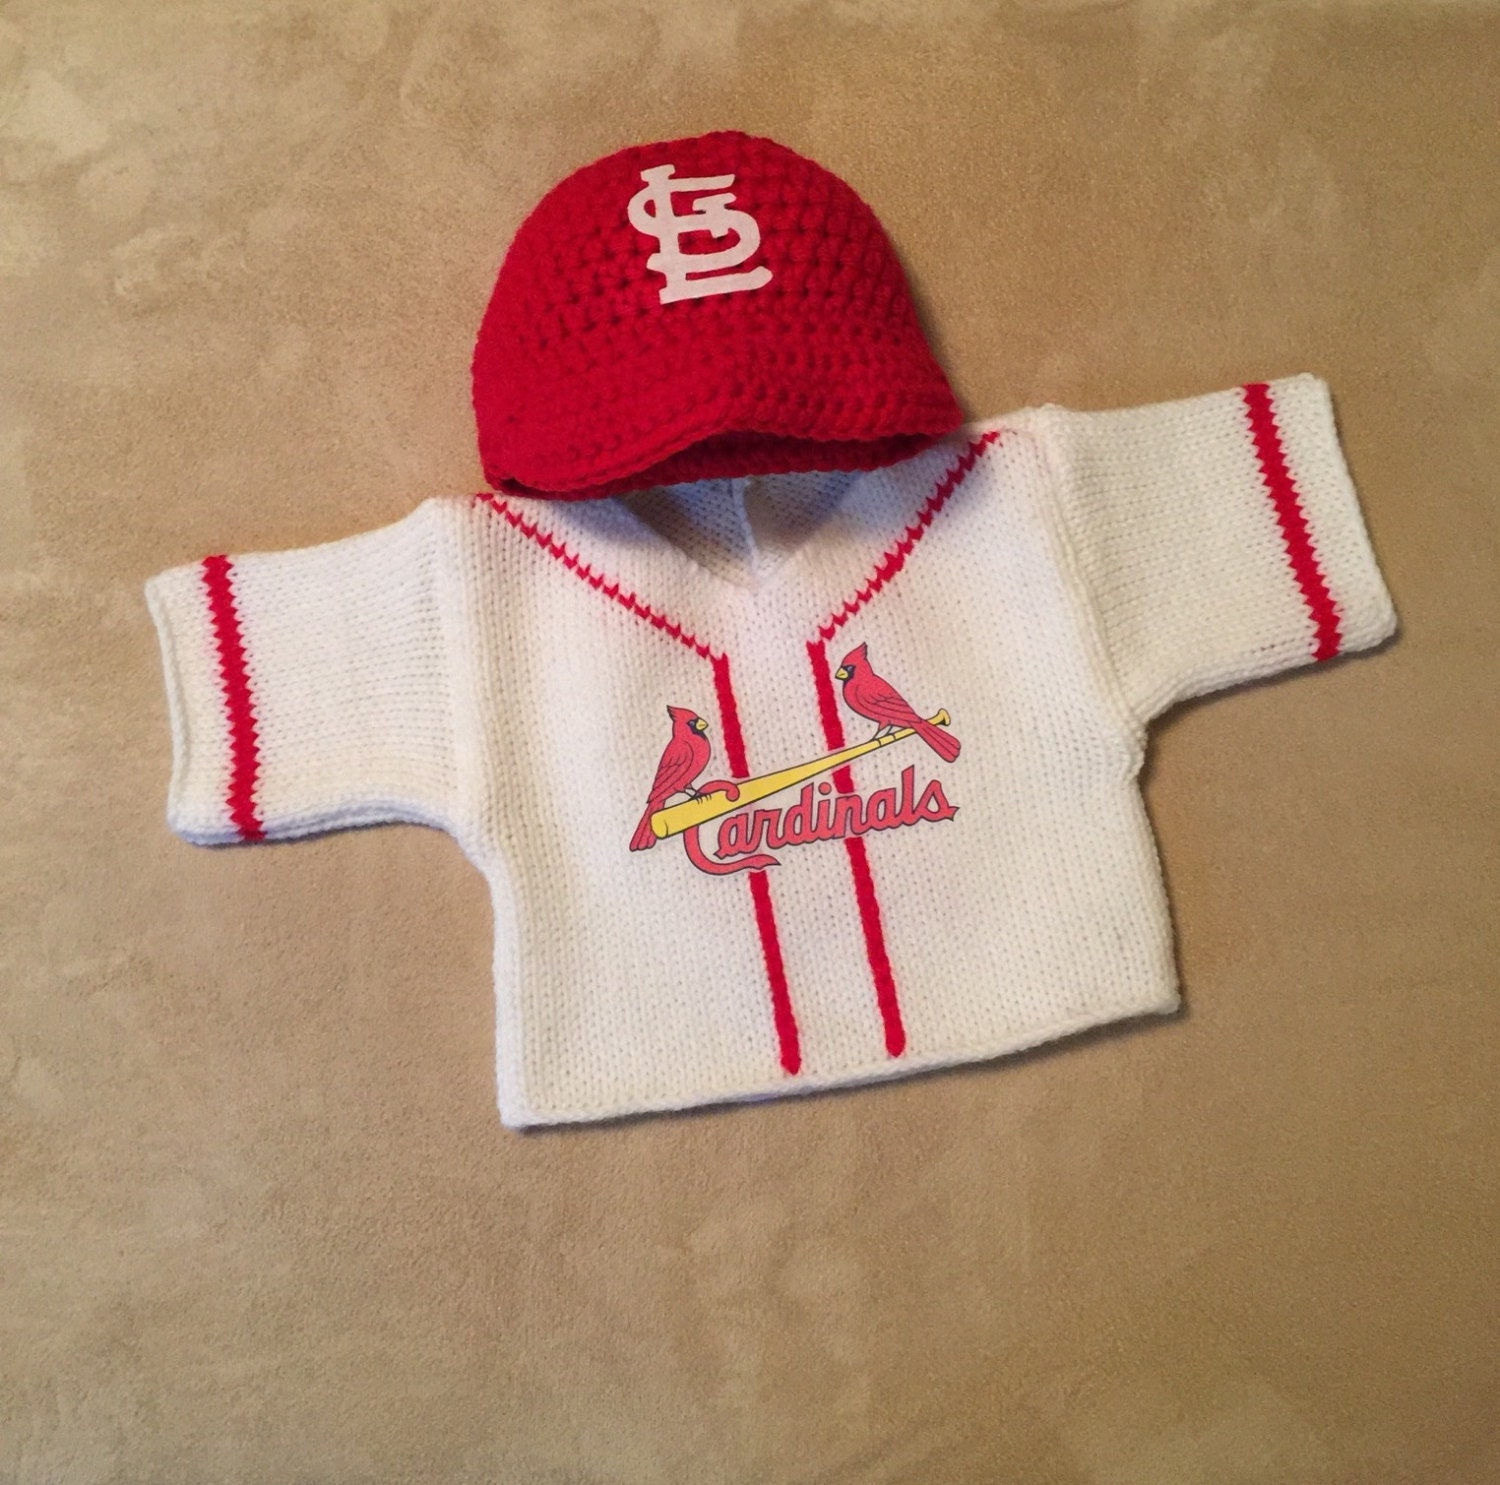 Baby baseball outfit baby boy photo outfit custom baby gift baseball baby shower gift gallery photo gallery photo gallery photo gallery photo gallery photo negle Image collections